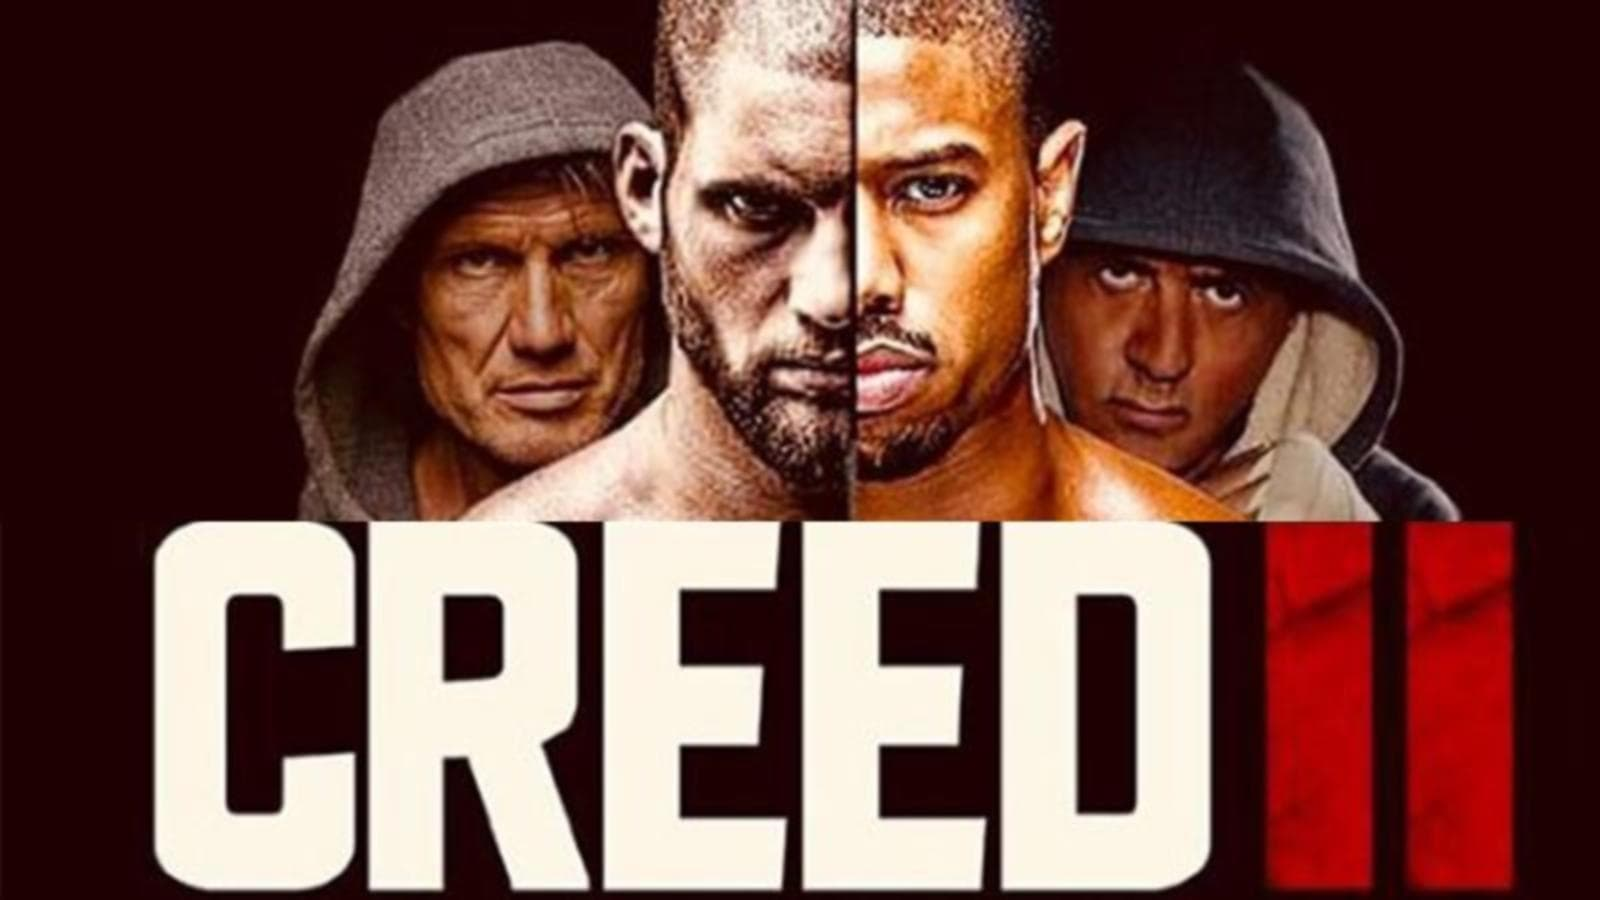 Creed 2 Streamcloud